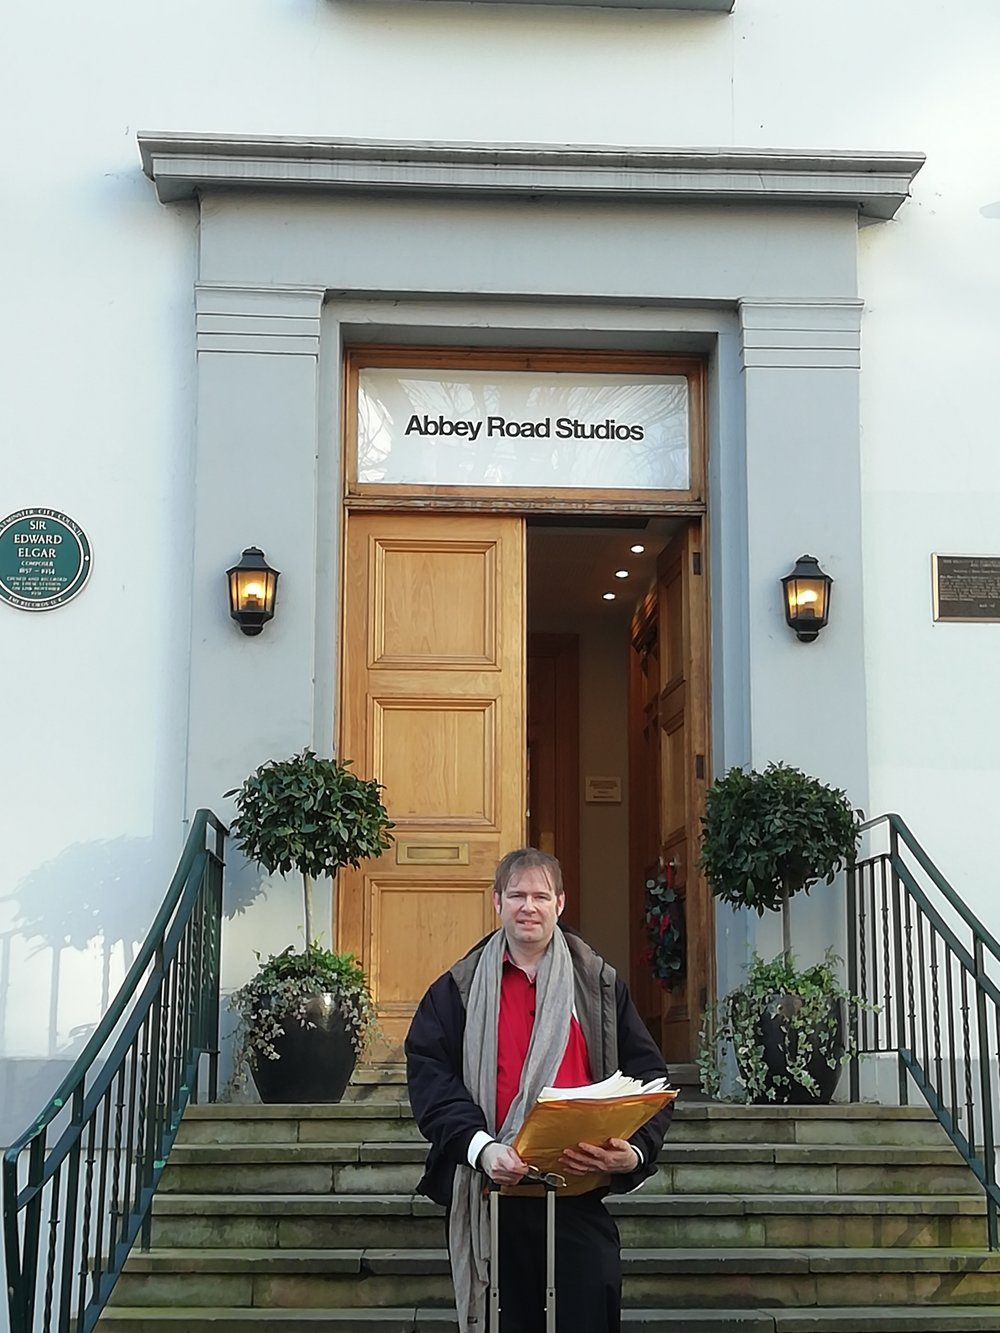 Kaska at Abbey Road Studios